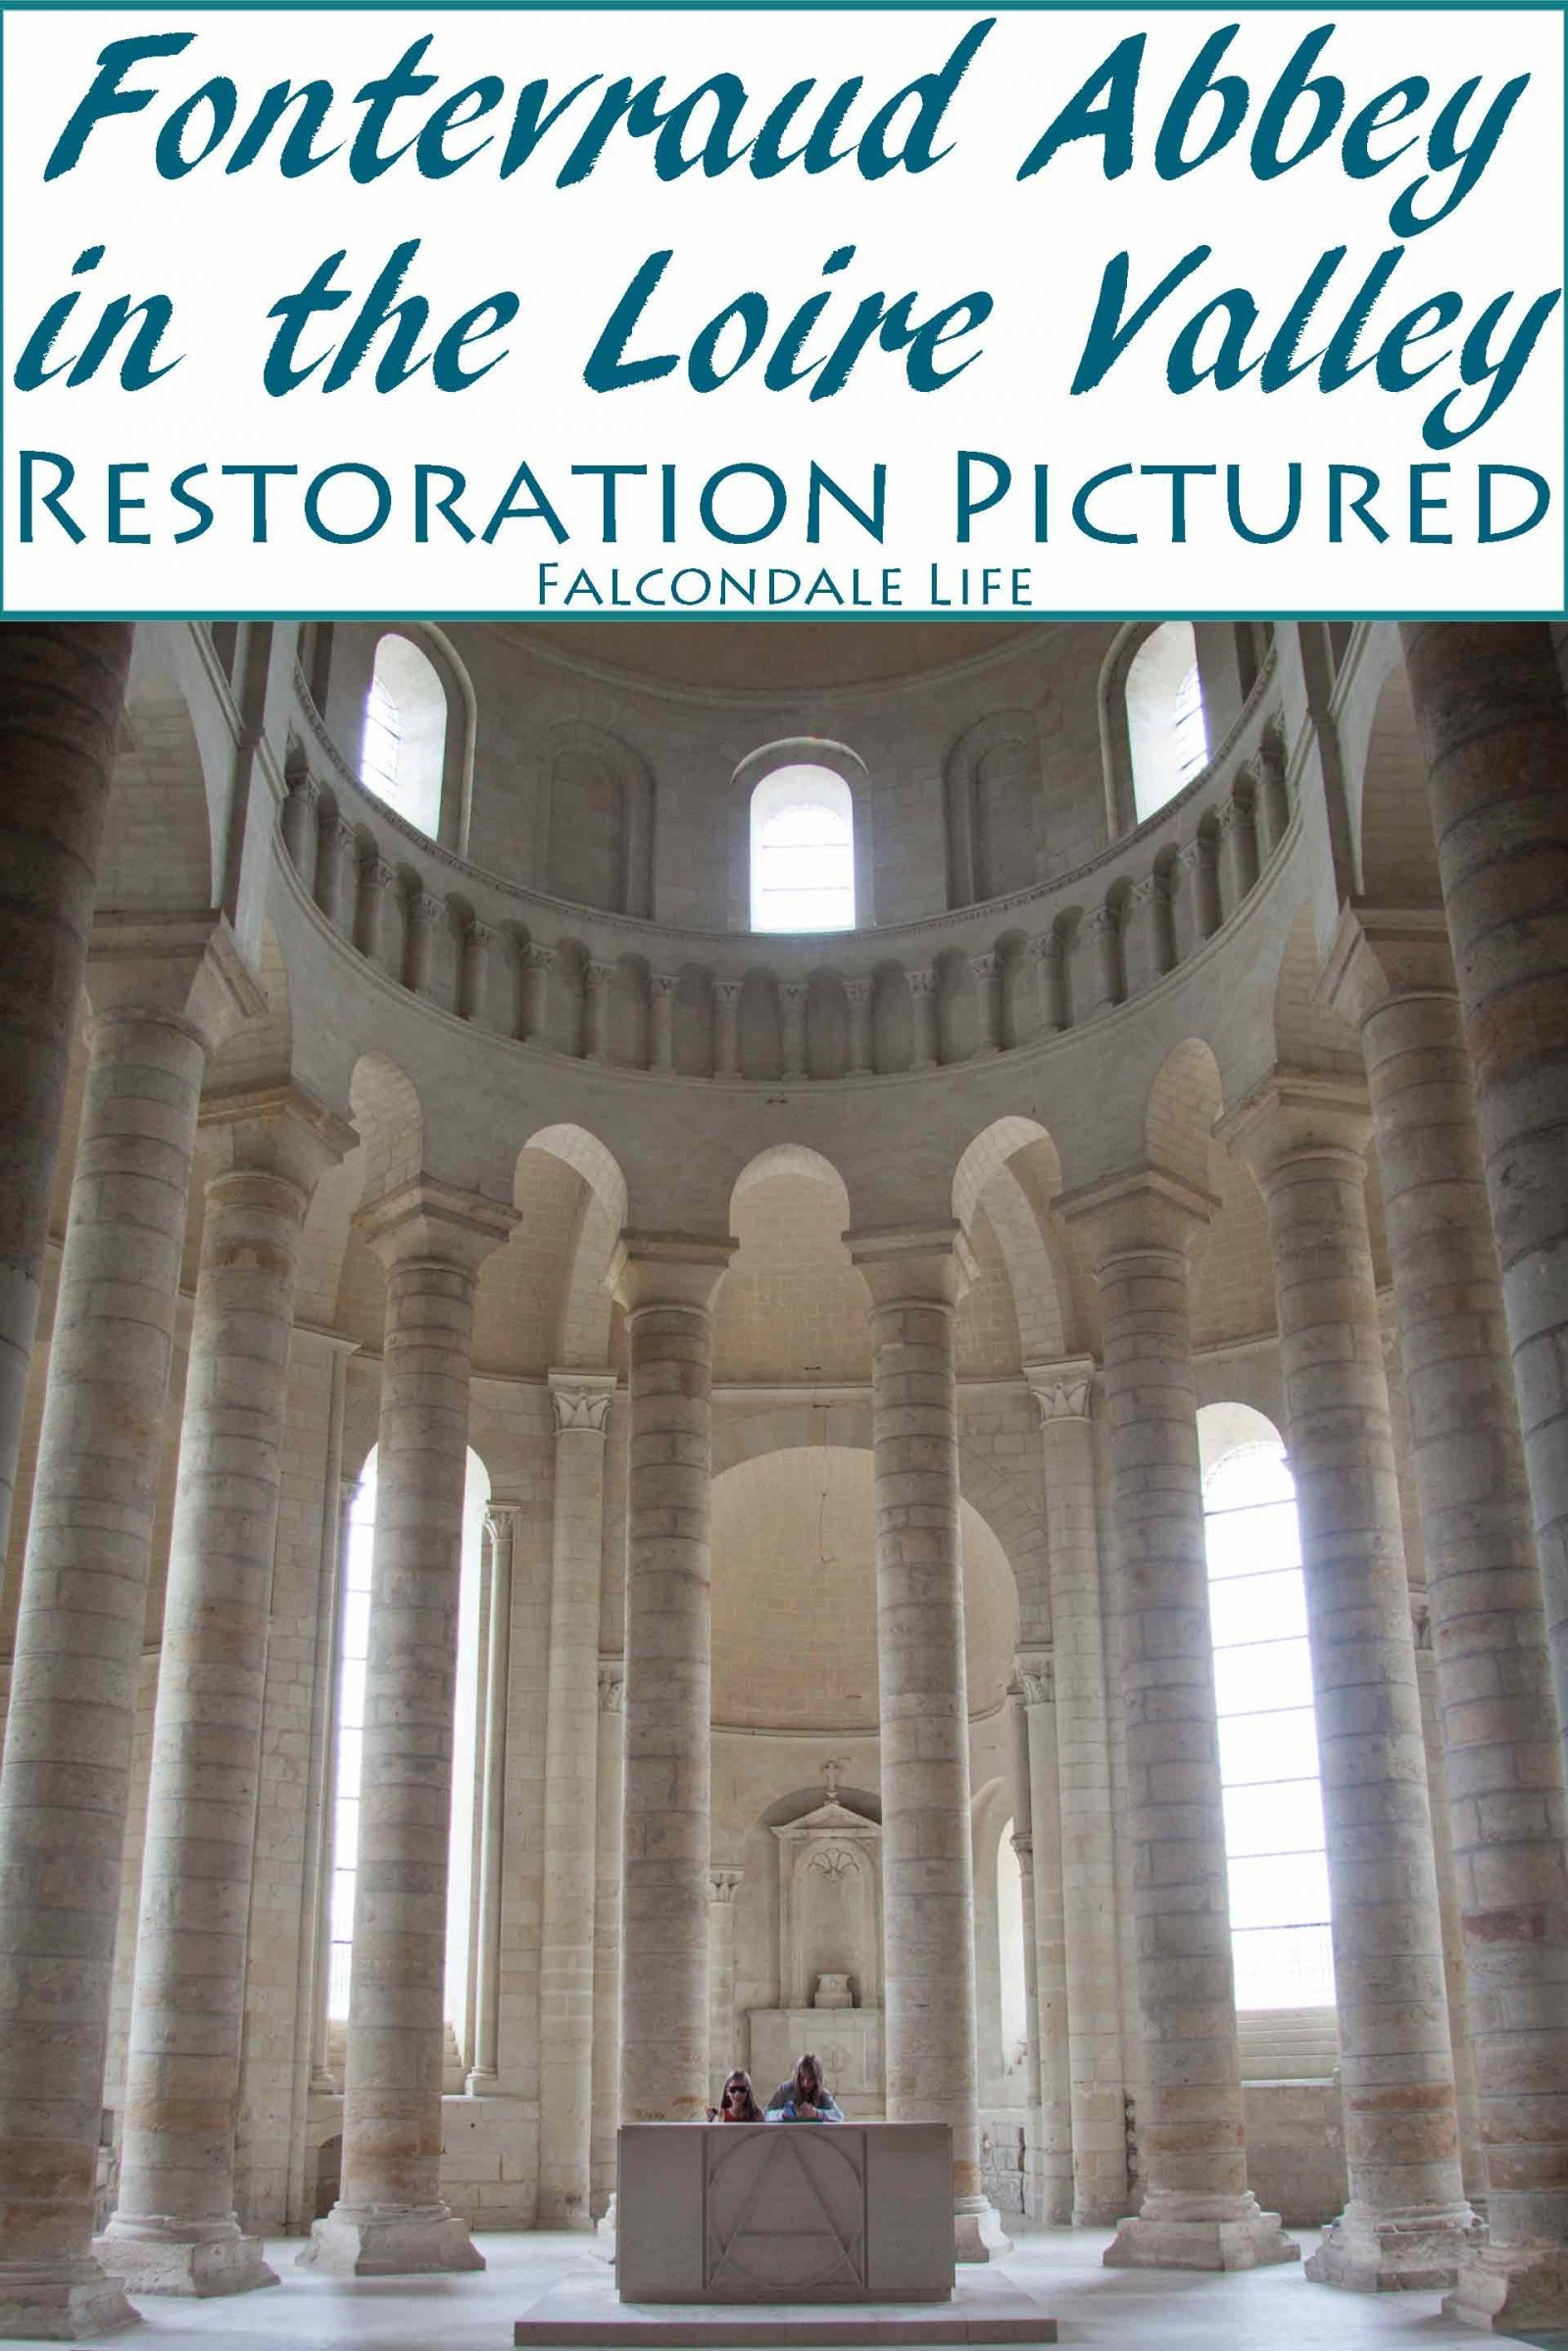 Fontevraud Abbey in the Loire Valley – Restoration Pictured